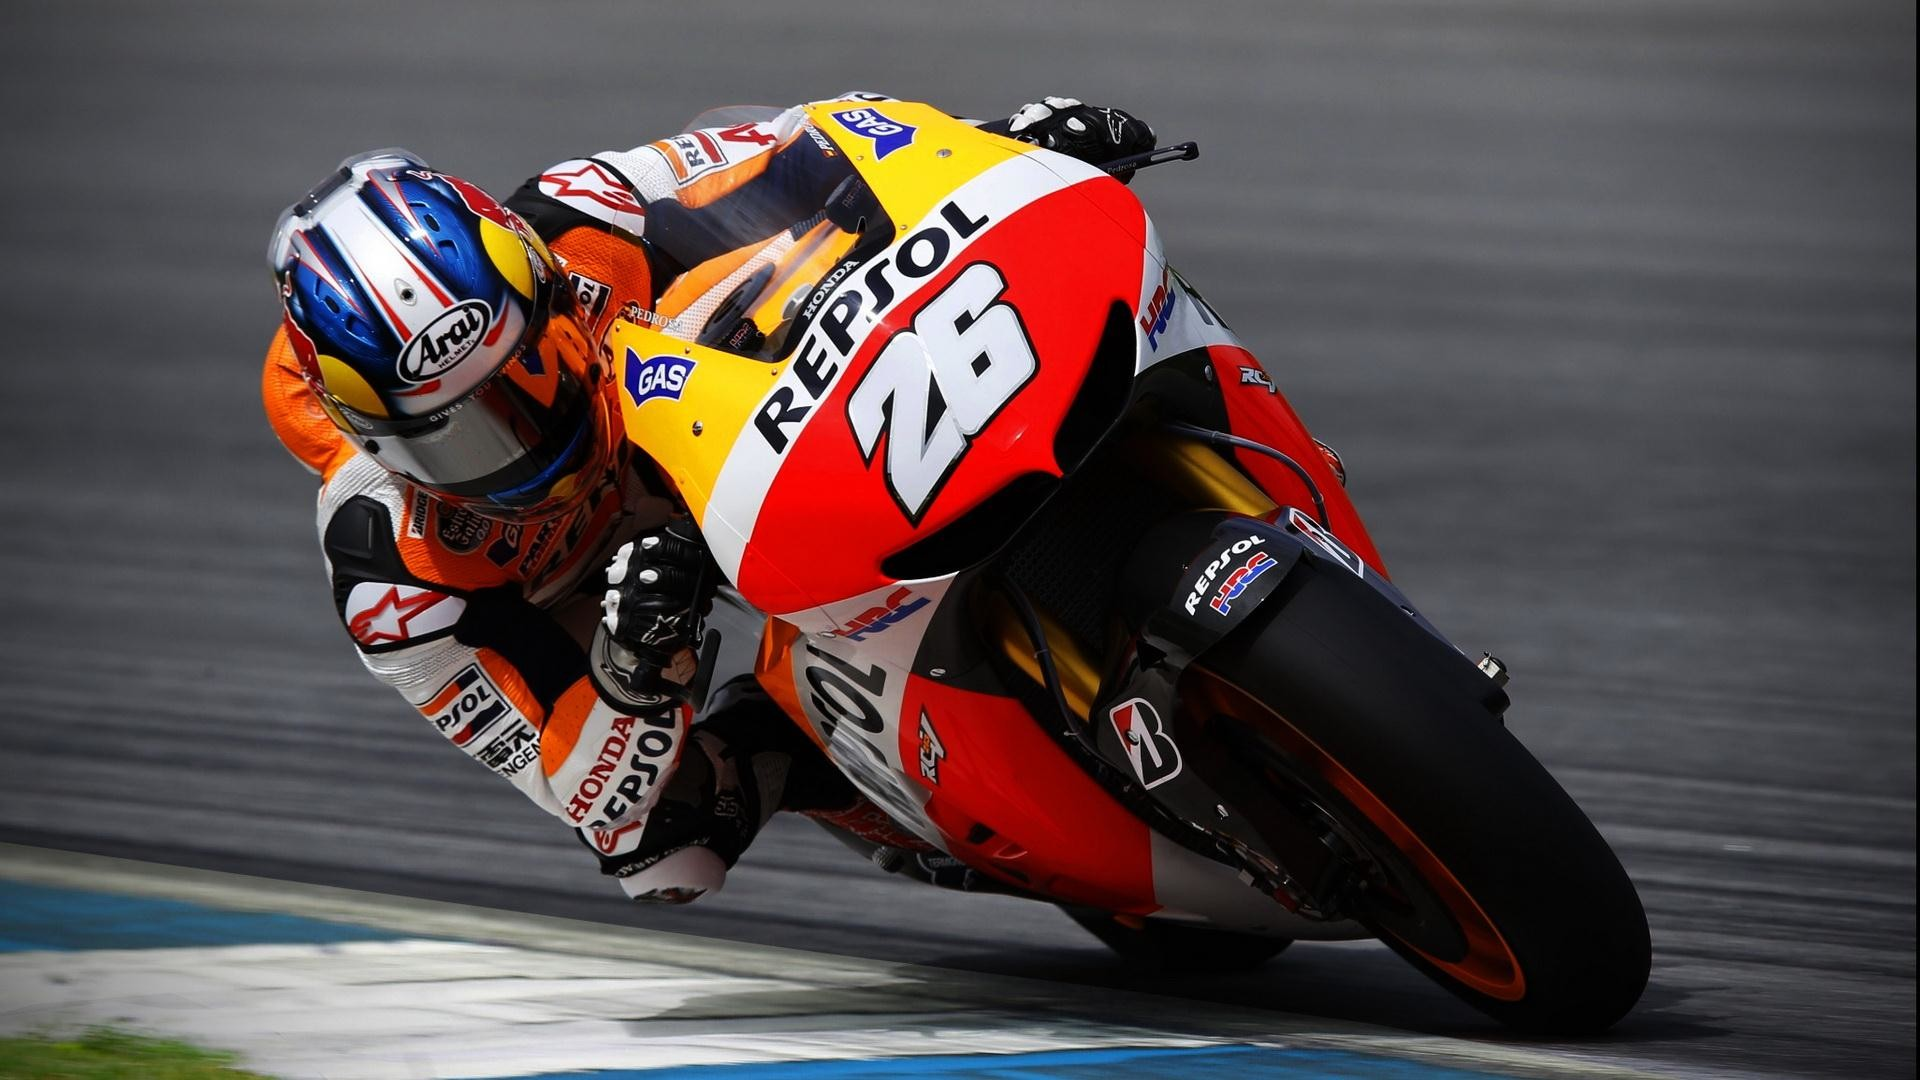 Moto Gp Wallpaper 58 images